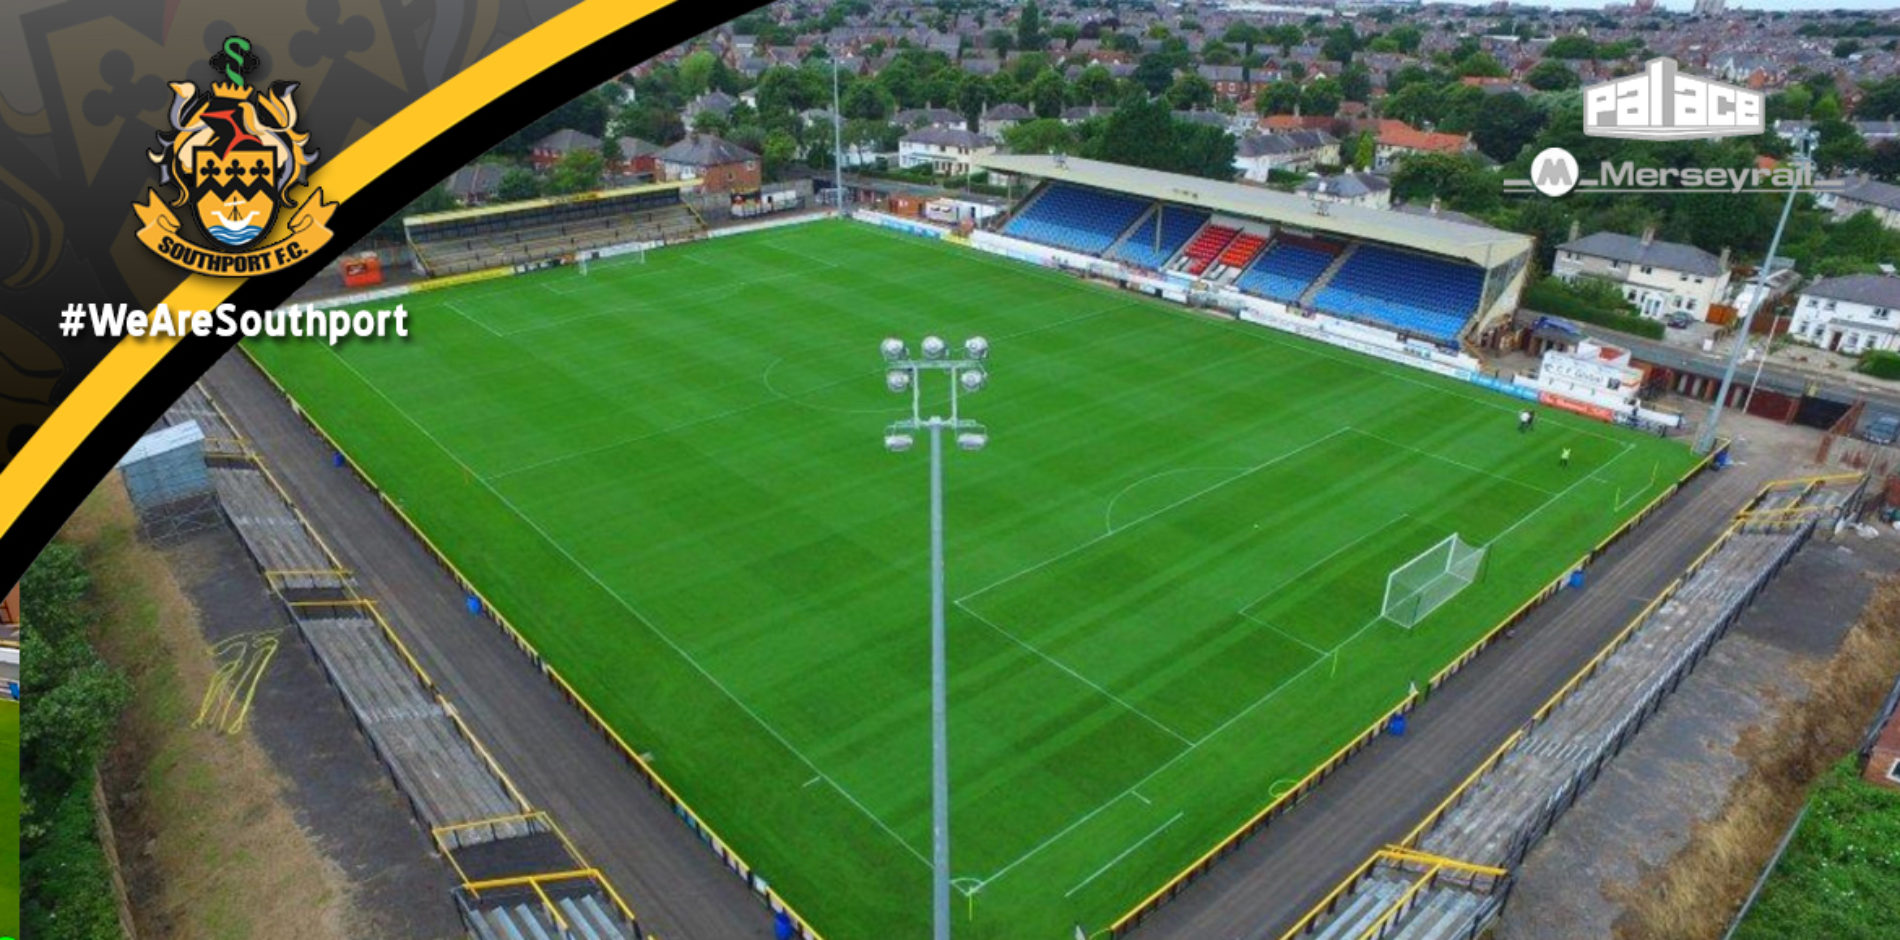 VIDEO | Second Visit For ViewedFromAbove Filming Merseyrail Community Stadium Drone Footage